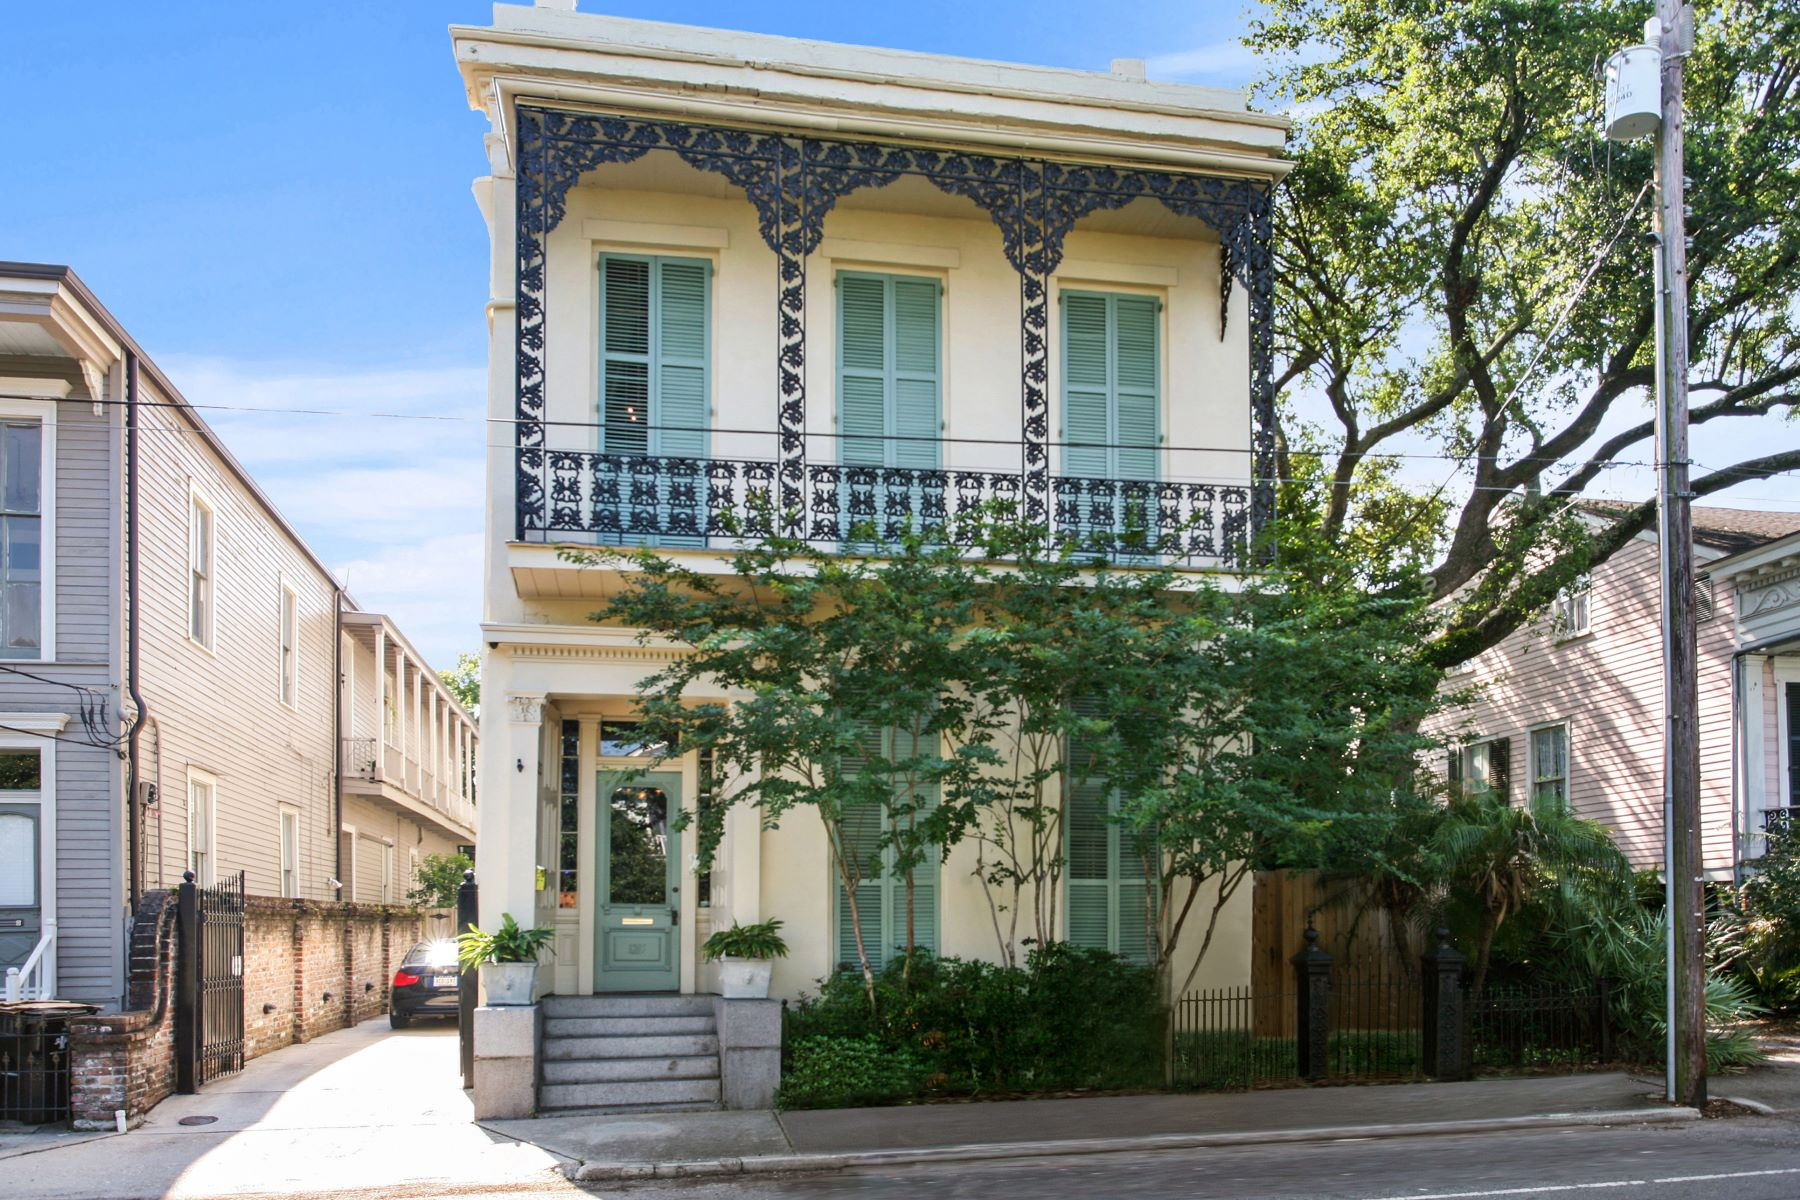 Single Family Homes for Sale at 1216 CAMP Street 1216 Camp St New Orleans, Louisiana 70130 United States